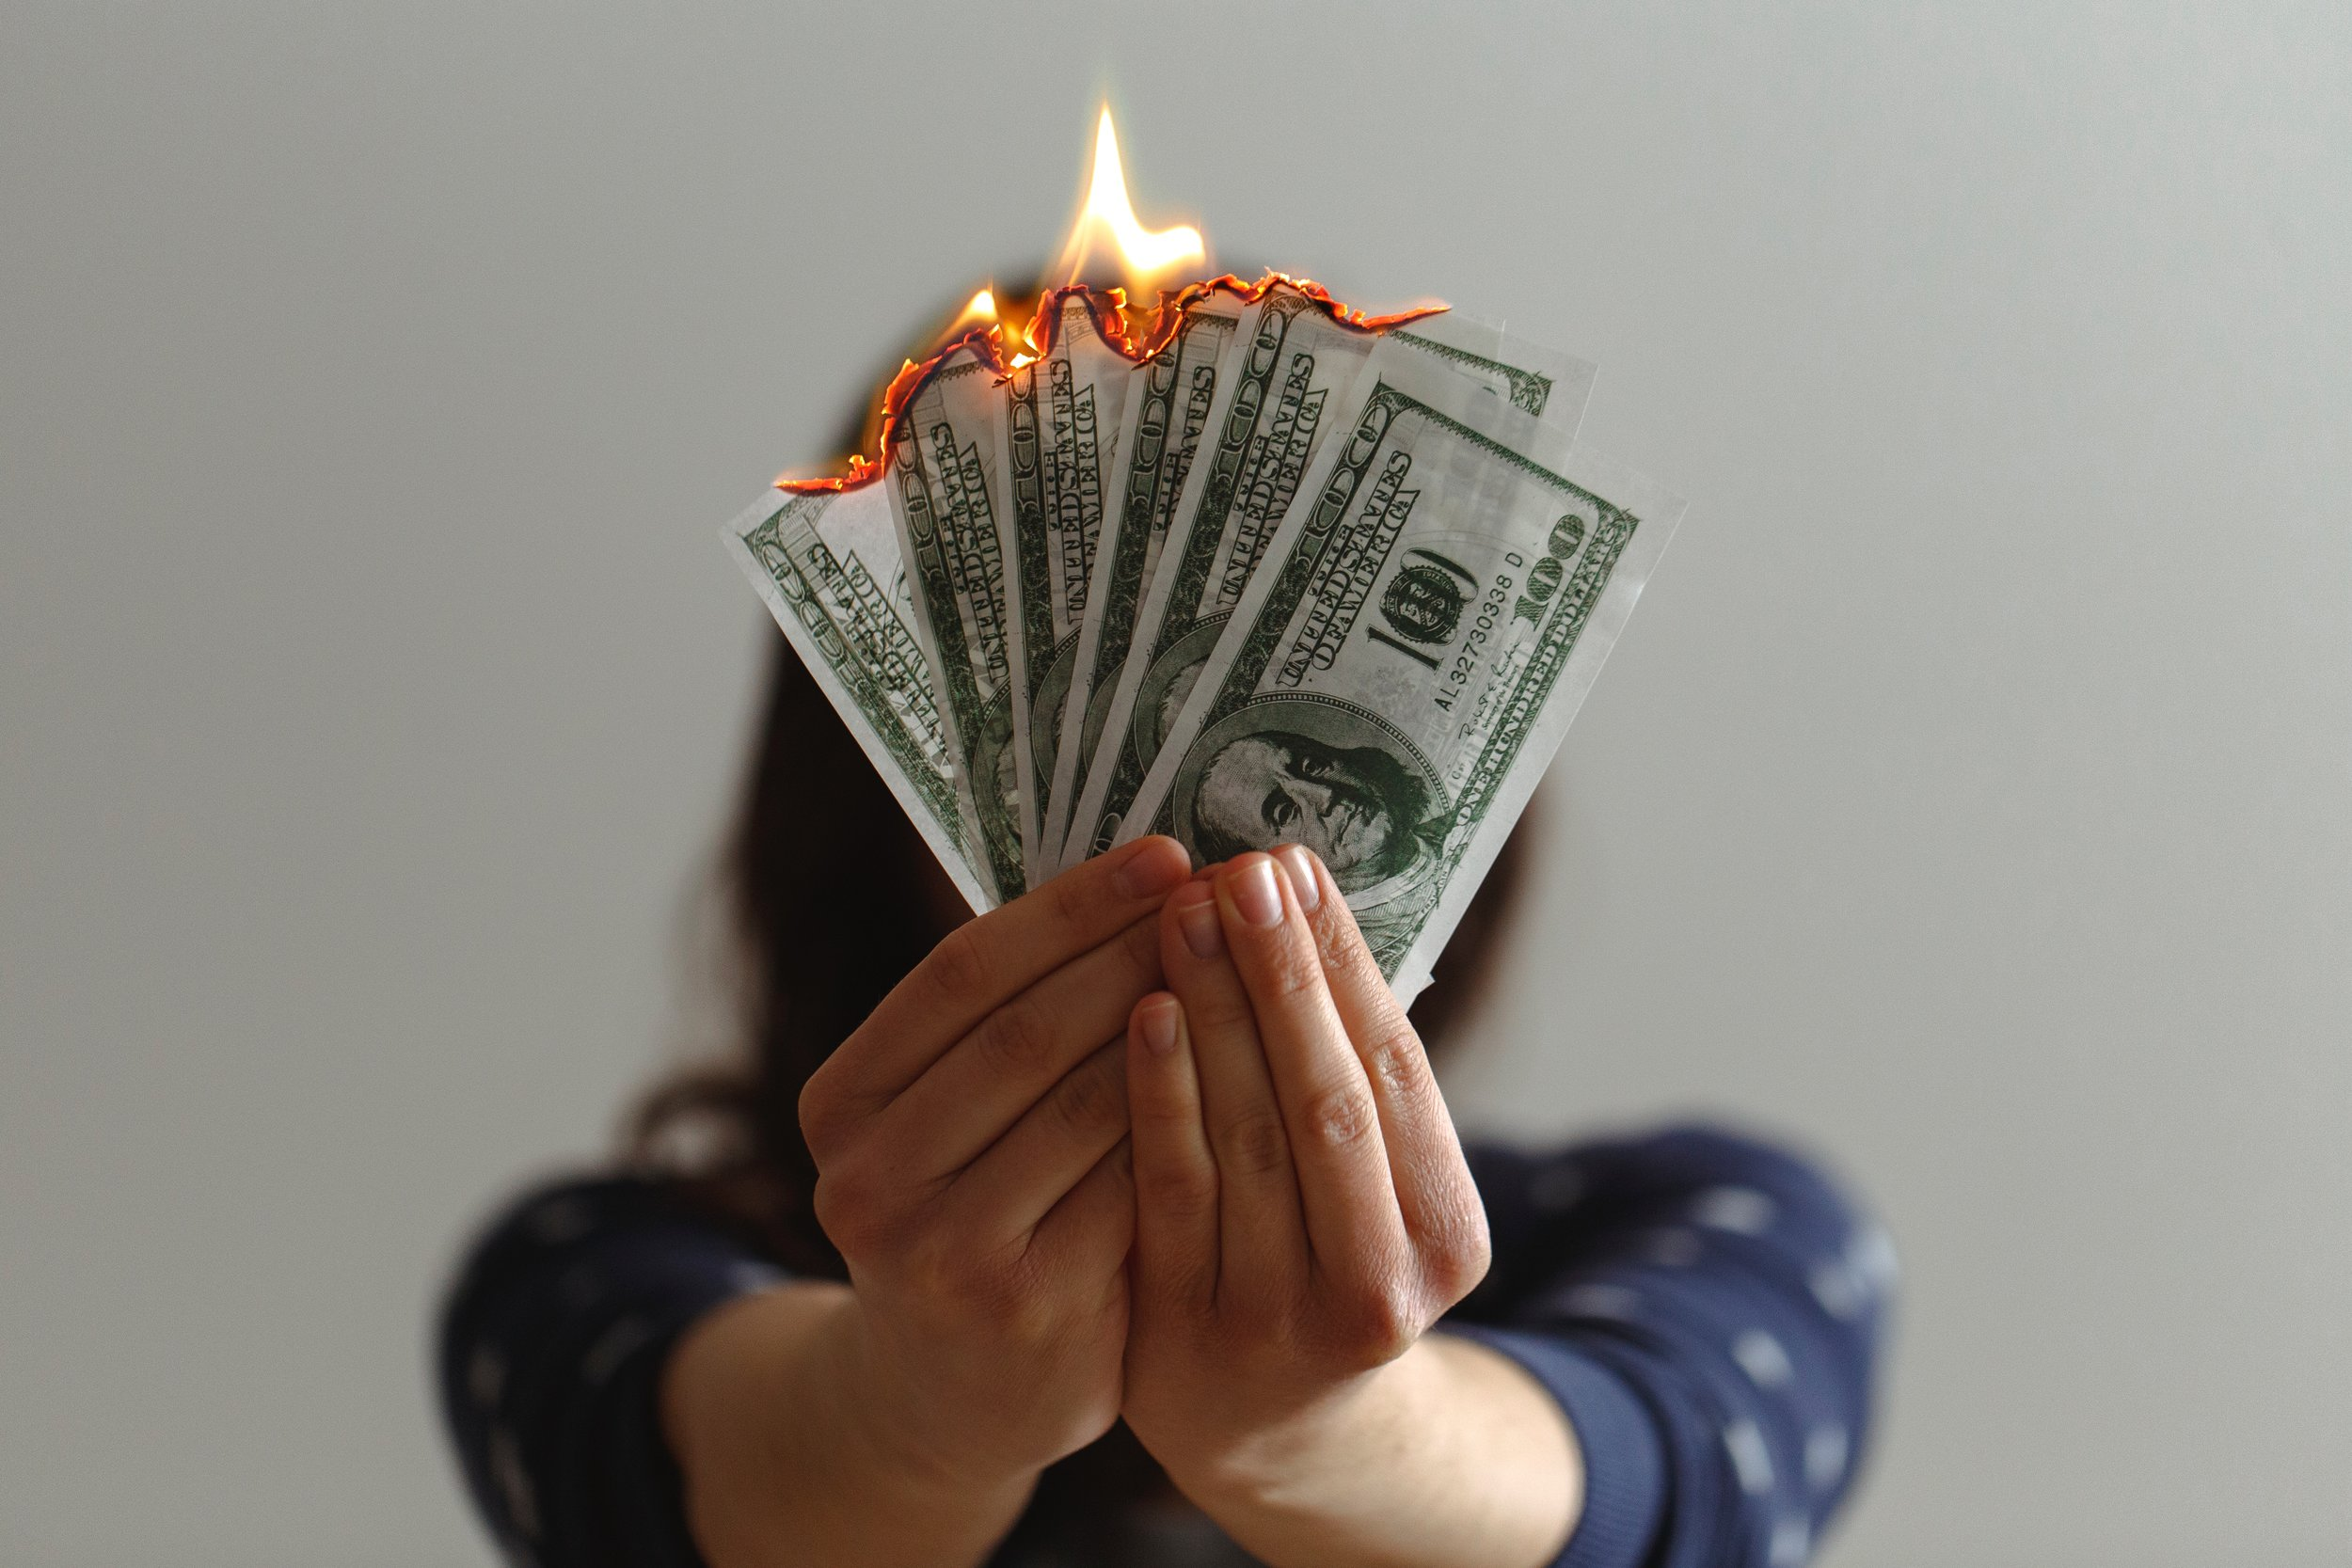 Traveler Beware: US travelers are getting burned in this conflagration of excessive and hidden fees.